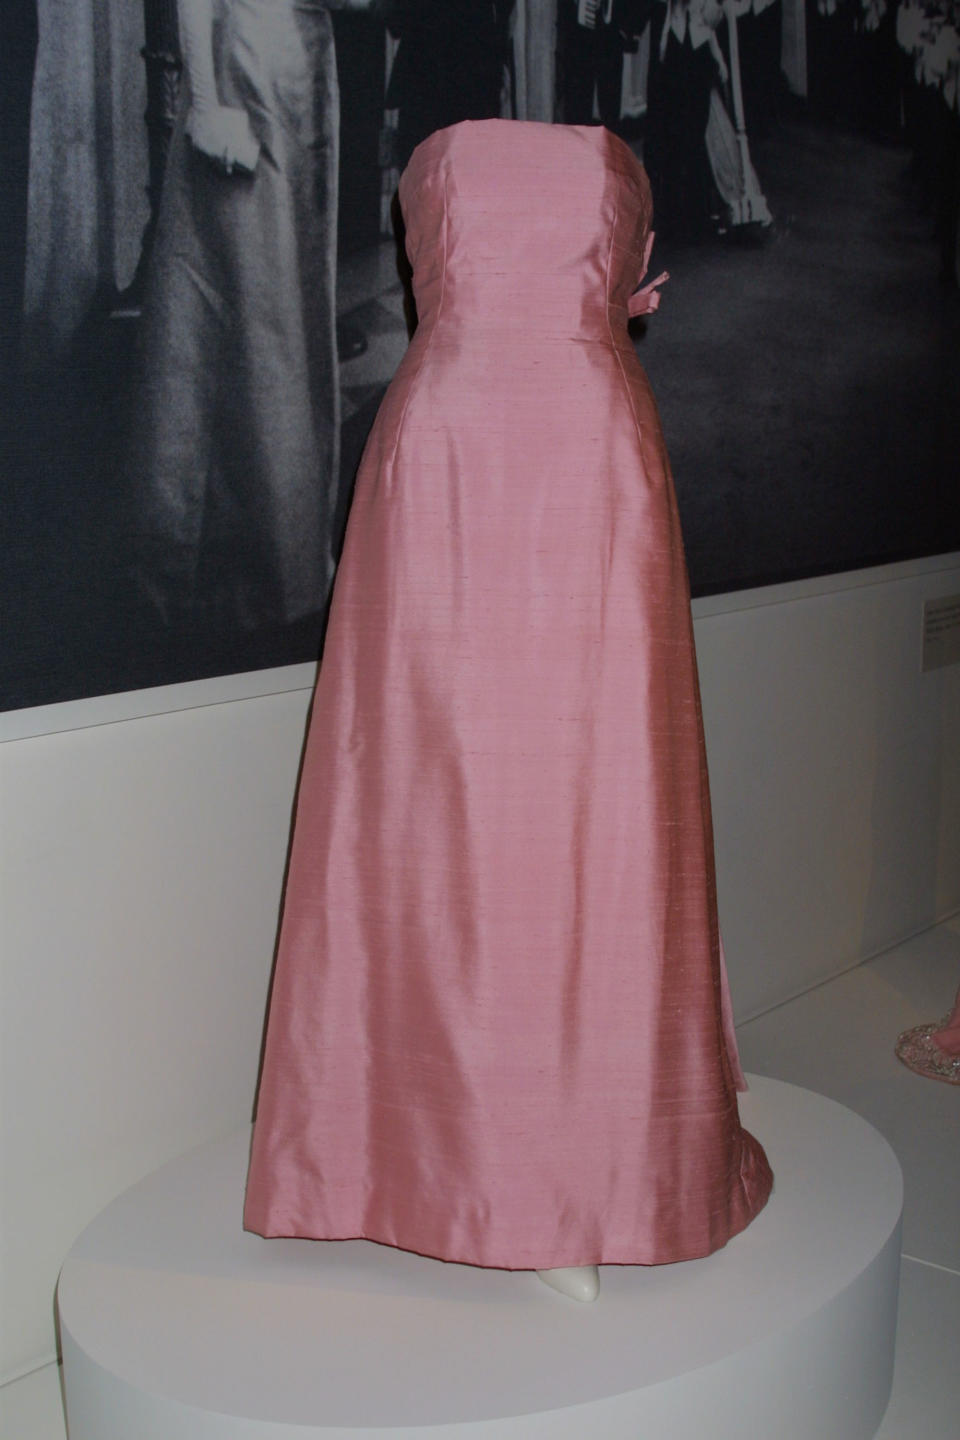 """388229 04: Jacqueline Kennedy wore this pink silk-dupioni shantung evening dress by Guy Douvier for Christian Dior to a White House state dinner honoring Andre Malraux, French minisiter of culture, on May 11, 1962. It is now on display at the exhibition """"Jacqueline Kennedy: The White House Years"""" at the Costume Institute of the Metropolitan Museum of Art in New York, April 22, 2001. (Photo by George DeSota/Newsmakers)"""